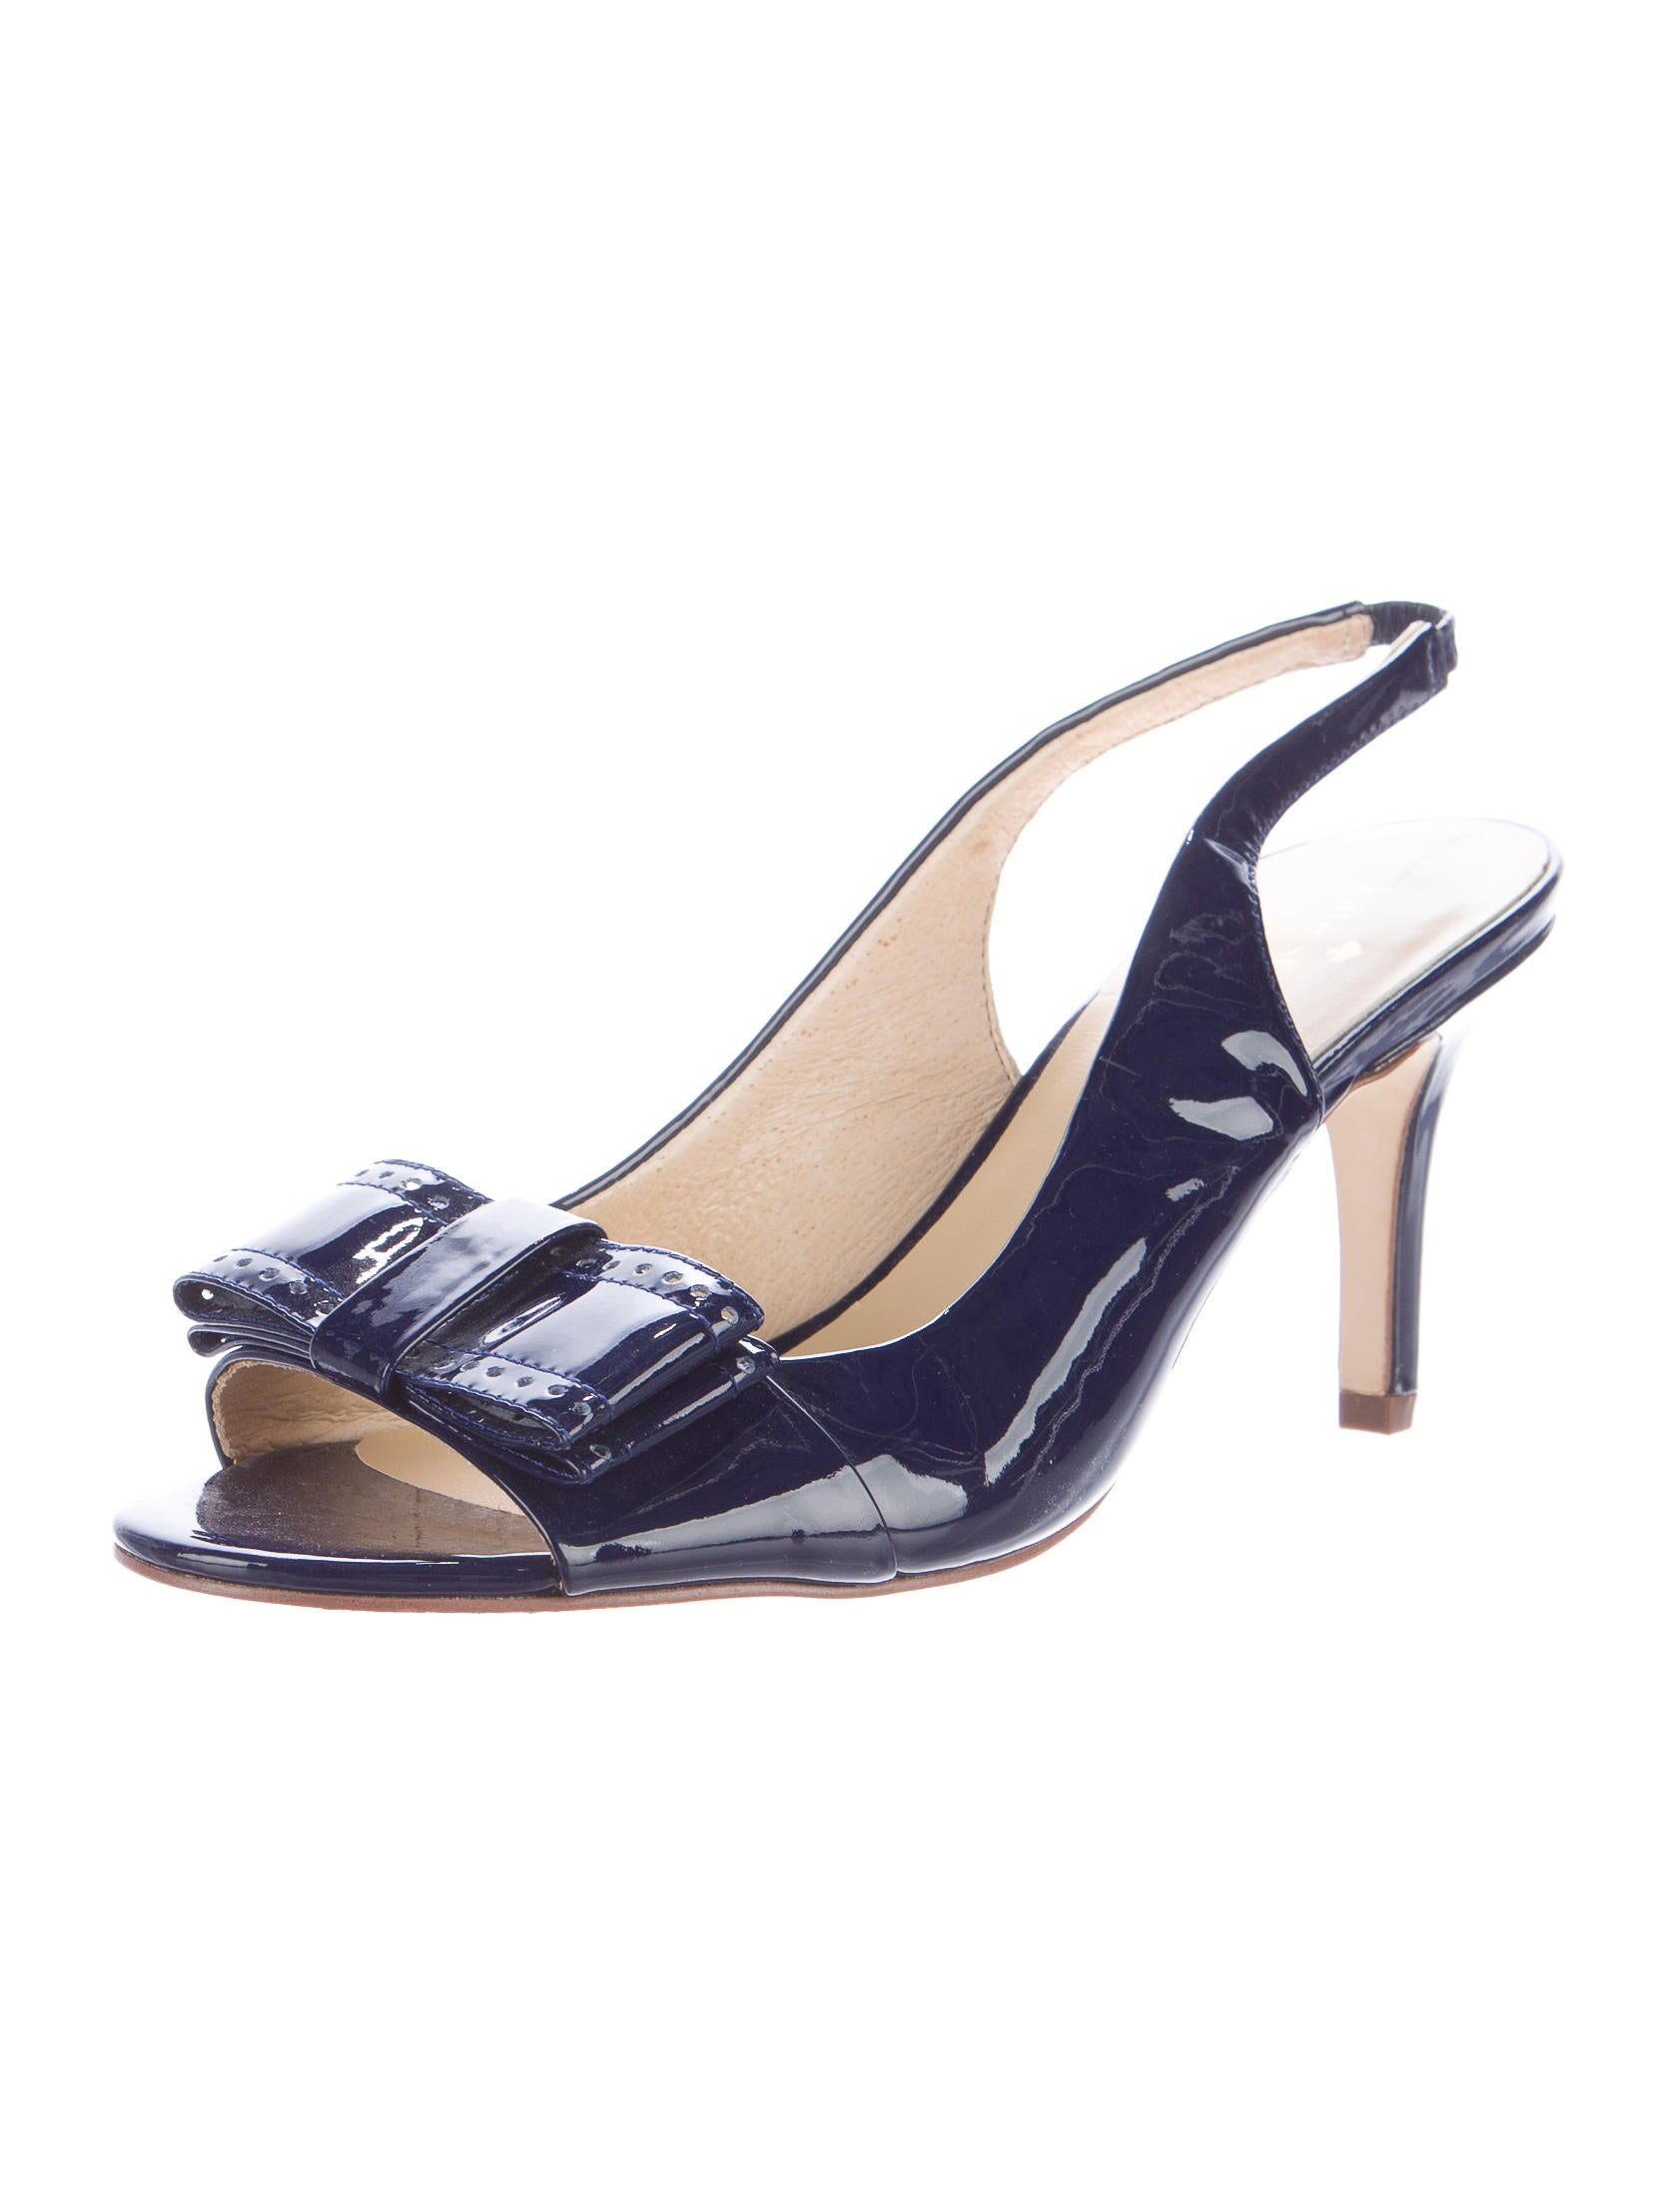 kate spade new york patent leather slingback pumps shoes